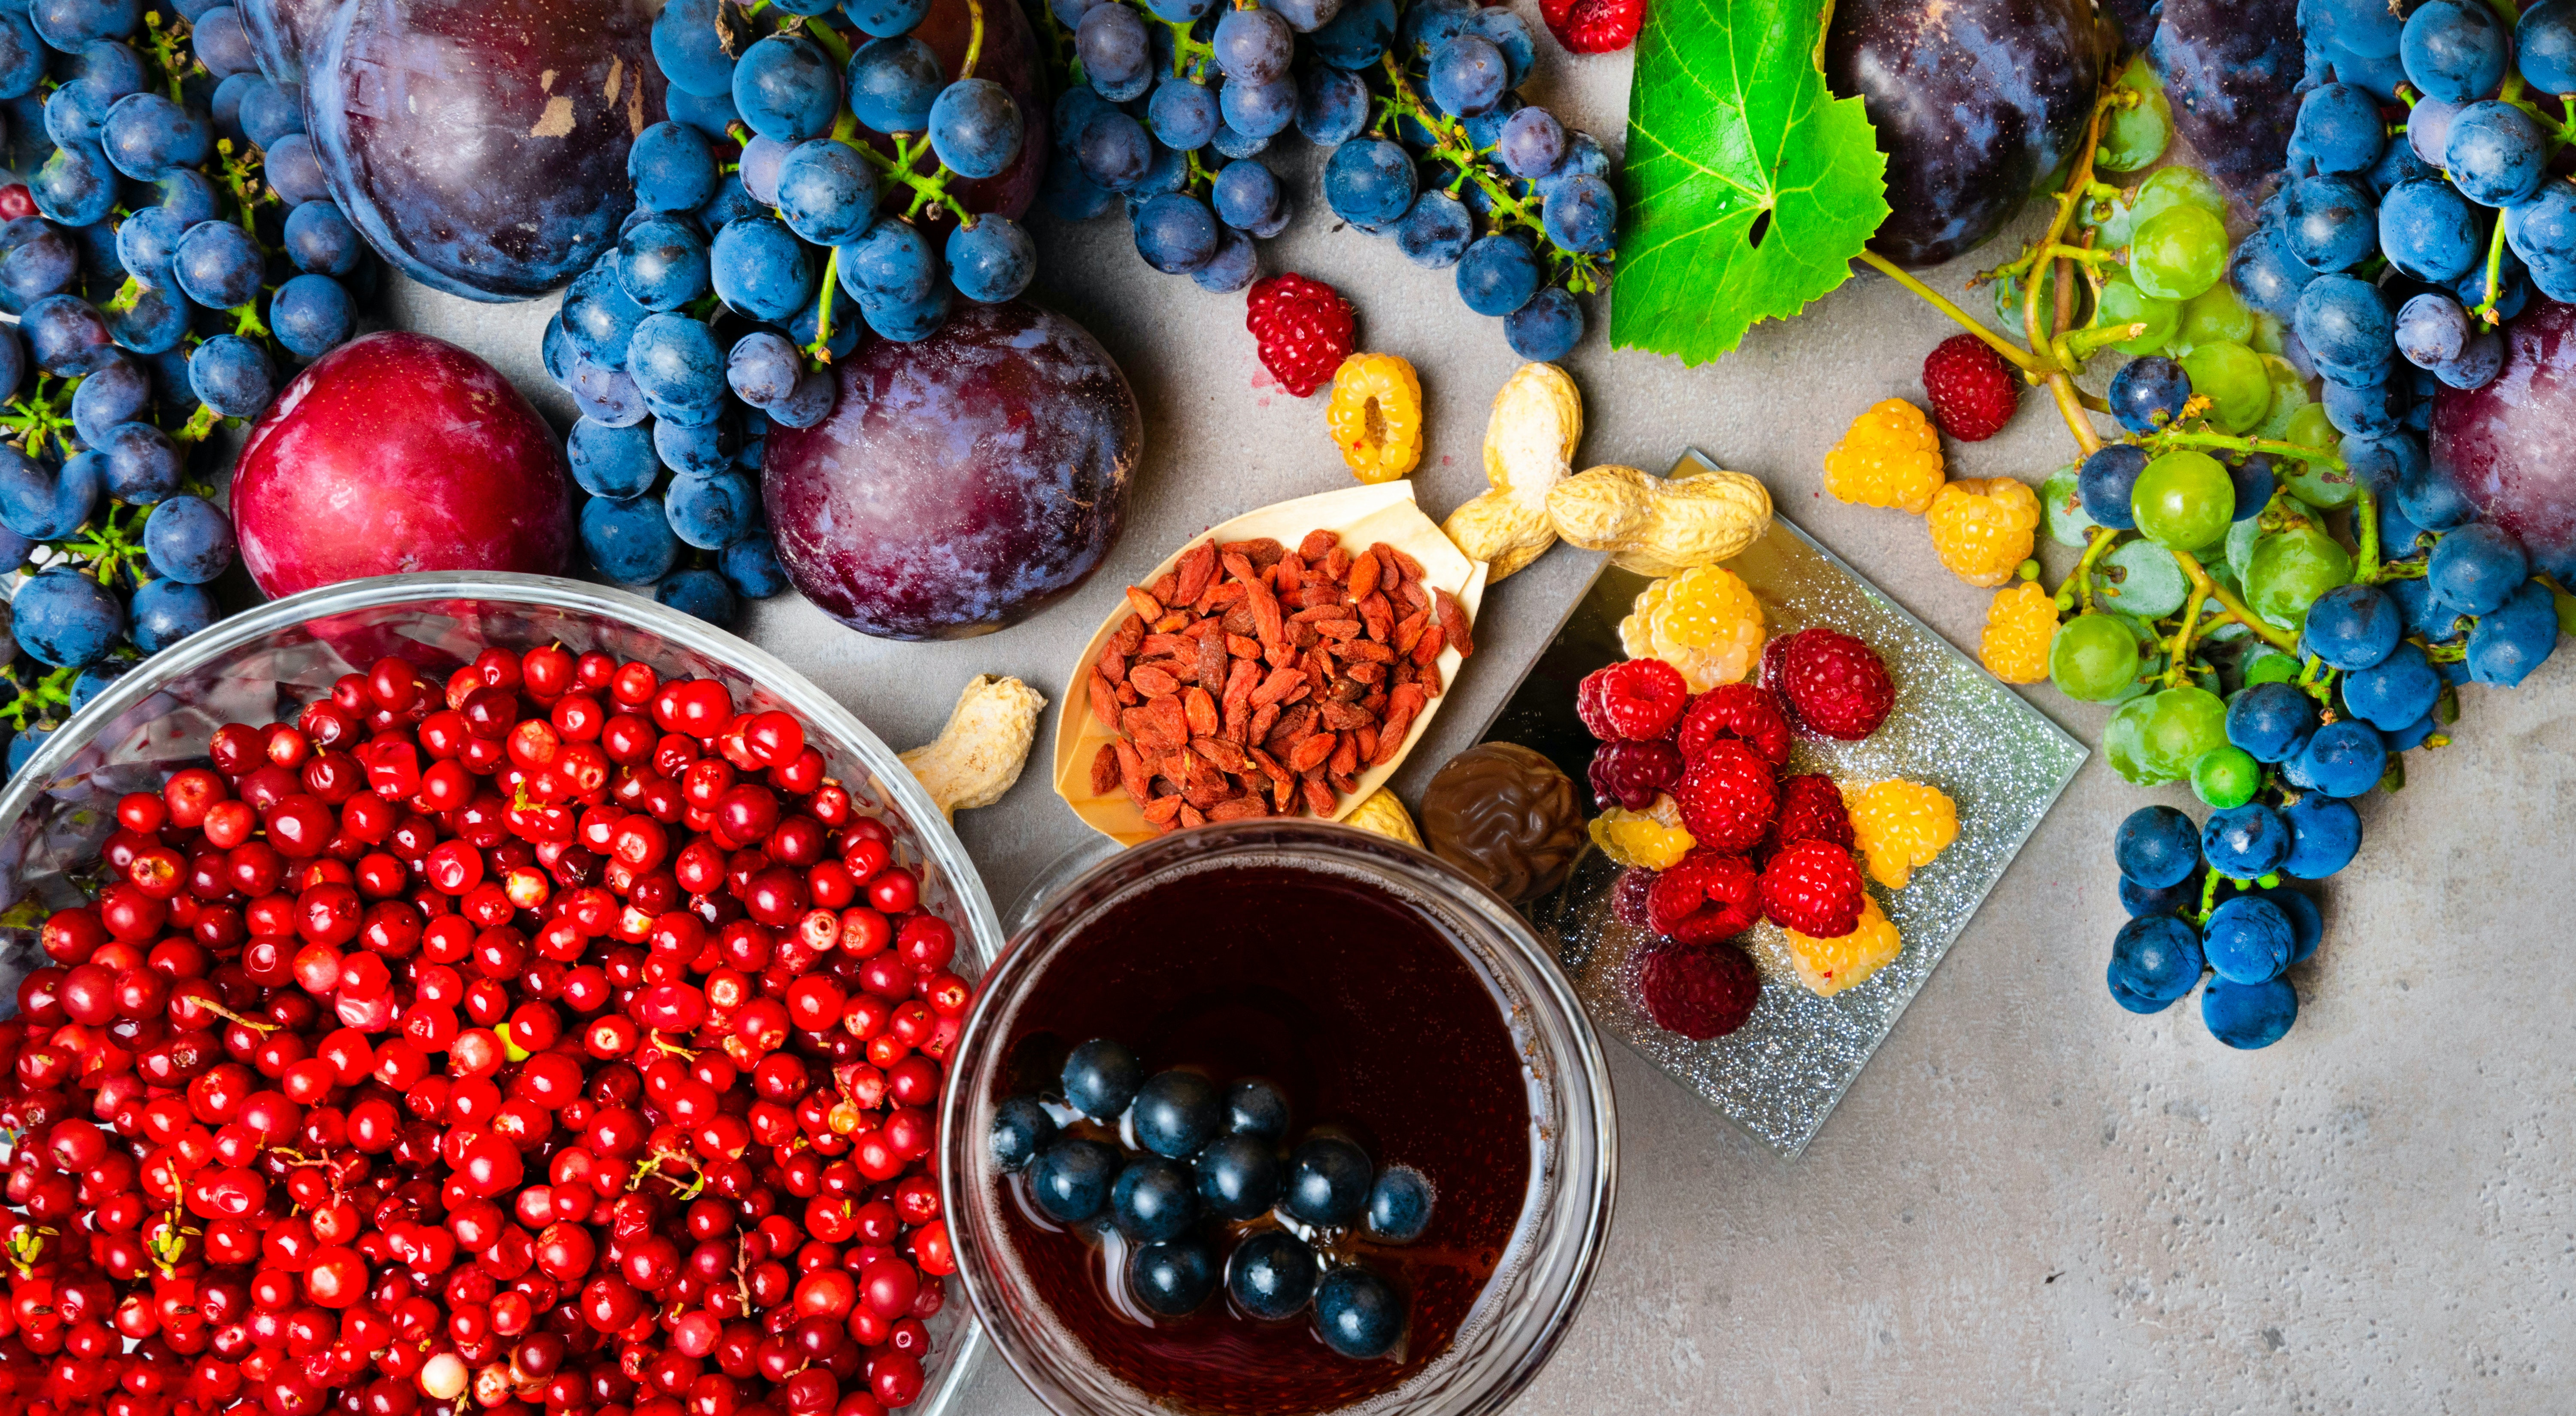 One Type Of Food Could Help Reverse Aging Thanks To Resveratrol